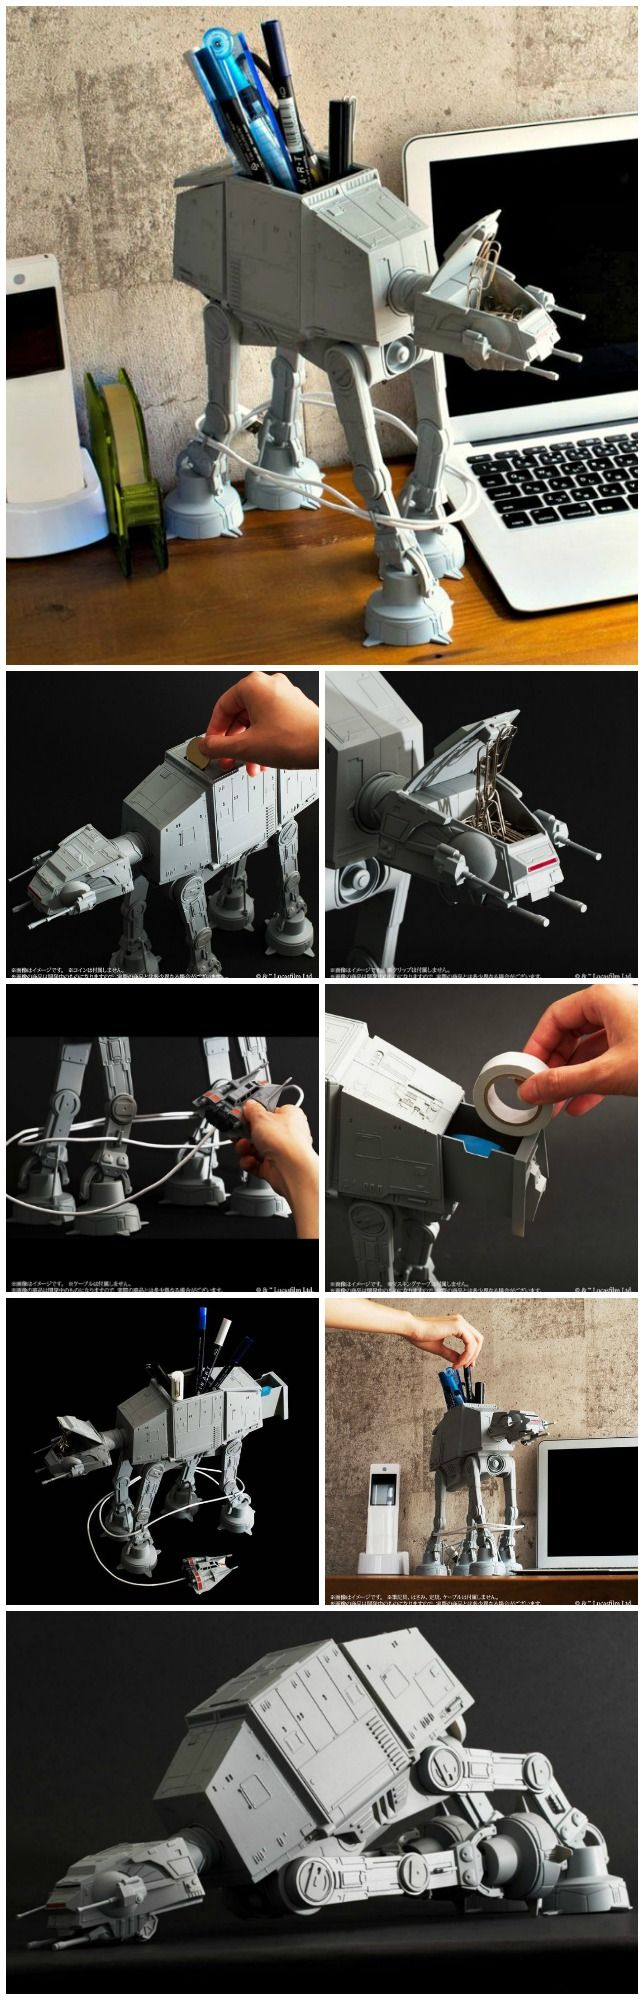 """The AT-AT Multi Stand is a 10"""" tall, highly detailed and poseable desk caddy that comes with a cable organizer that wraps the cable around its legs."""